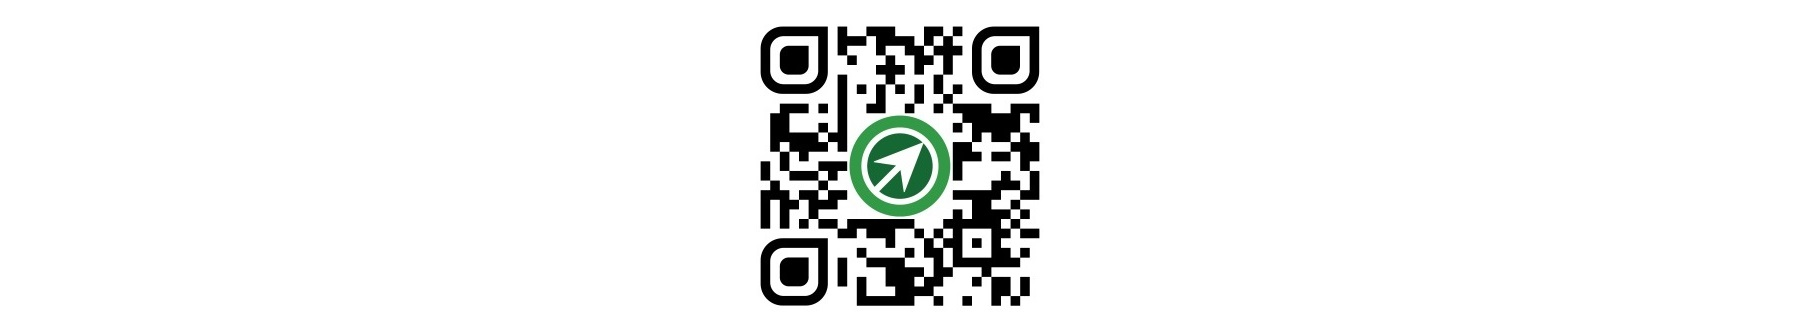 https://campaign-image.com/zohocampaigns/479159000000965004_zc_v141_otds_qrcode_for_newsletter2.jpg